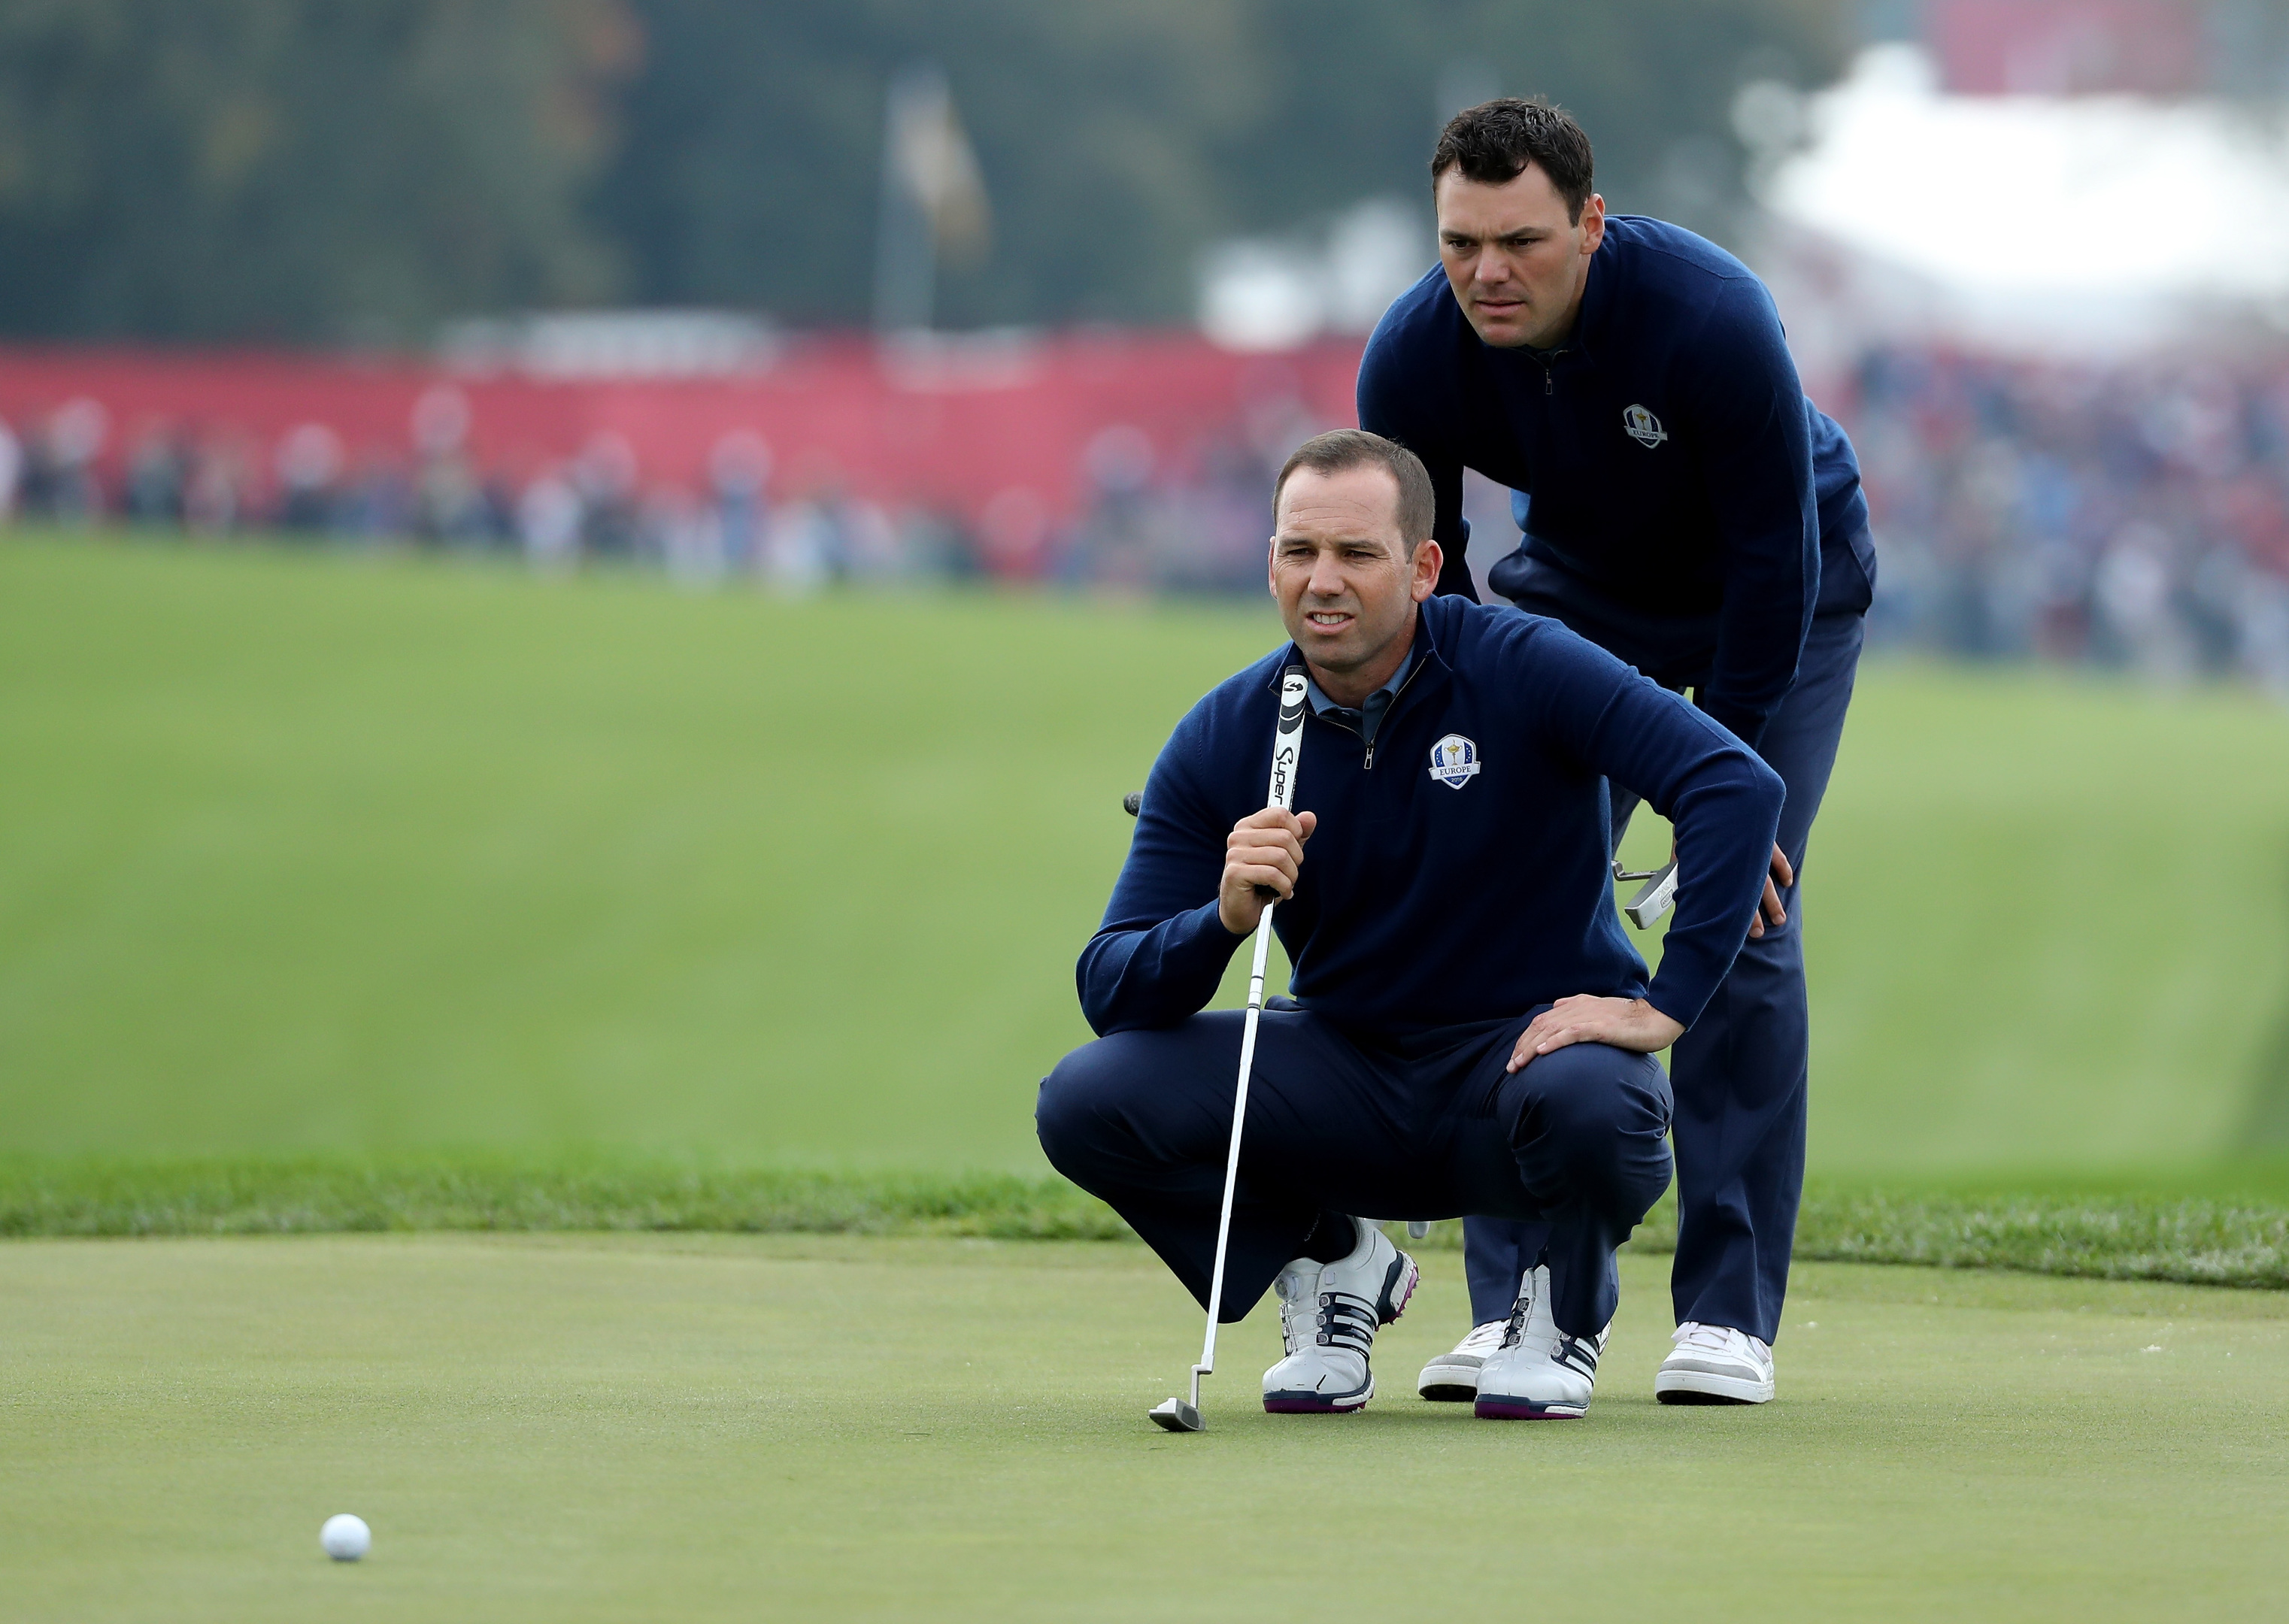 Sergio Garcia and Martin Kaymer led their match through 11 holes but couldn't hold on.